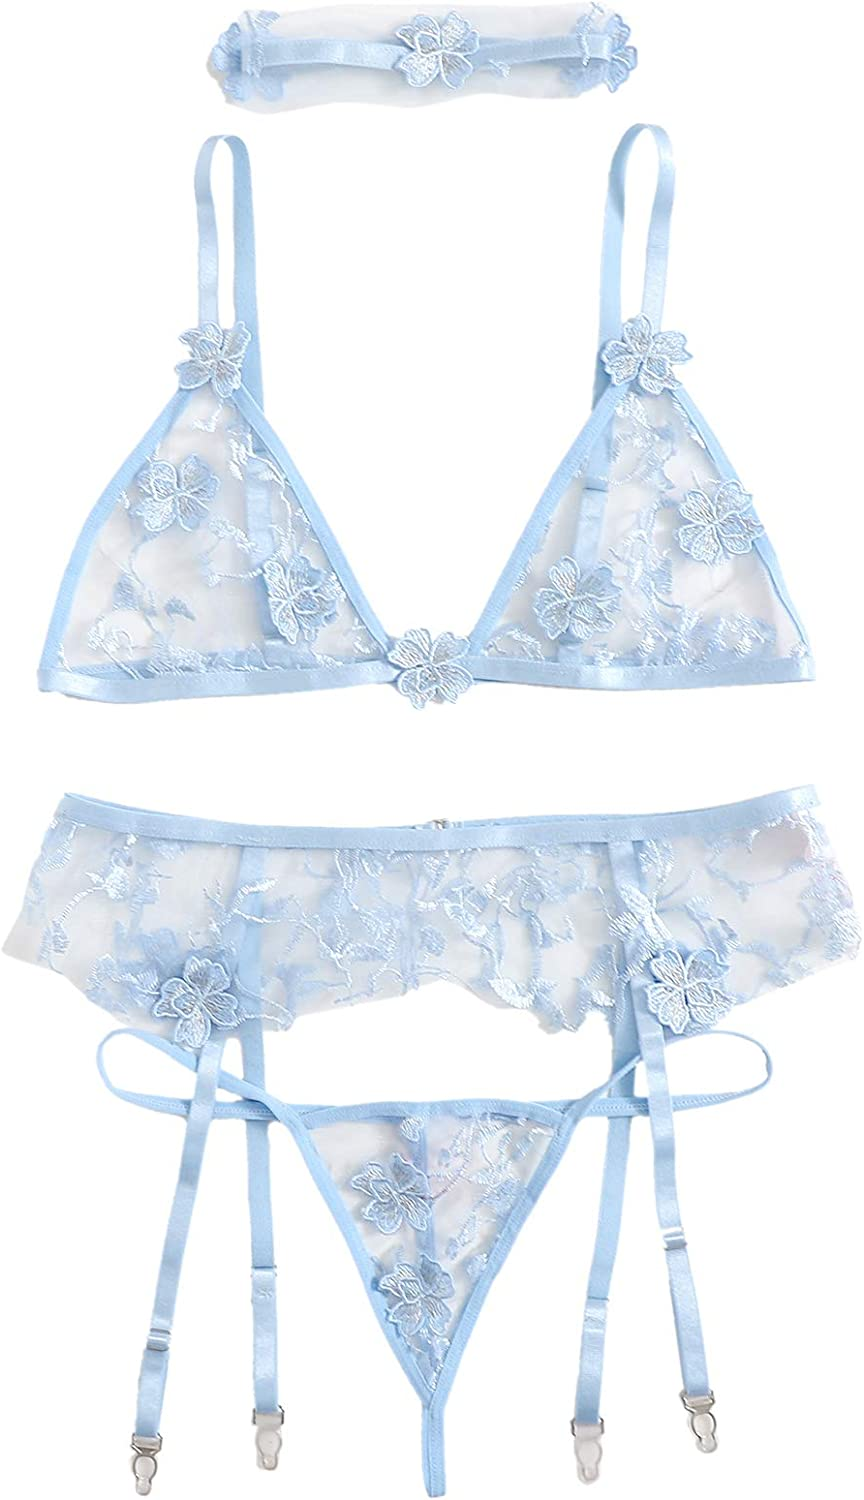 zdhoor Womans Floral Sheer 2 Piece Lingerie Set Embroidery Underwired Shelf Bra Hollow Out Panties Outfit